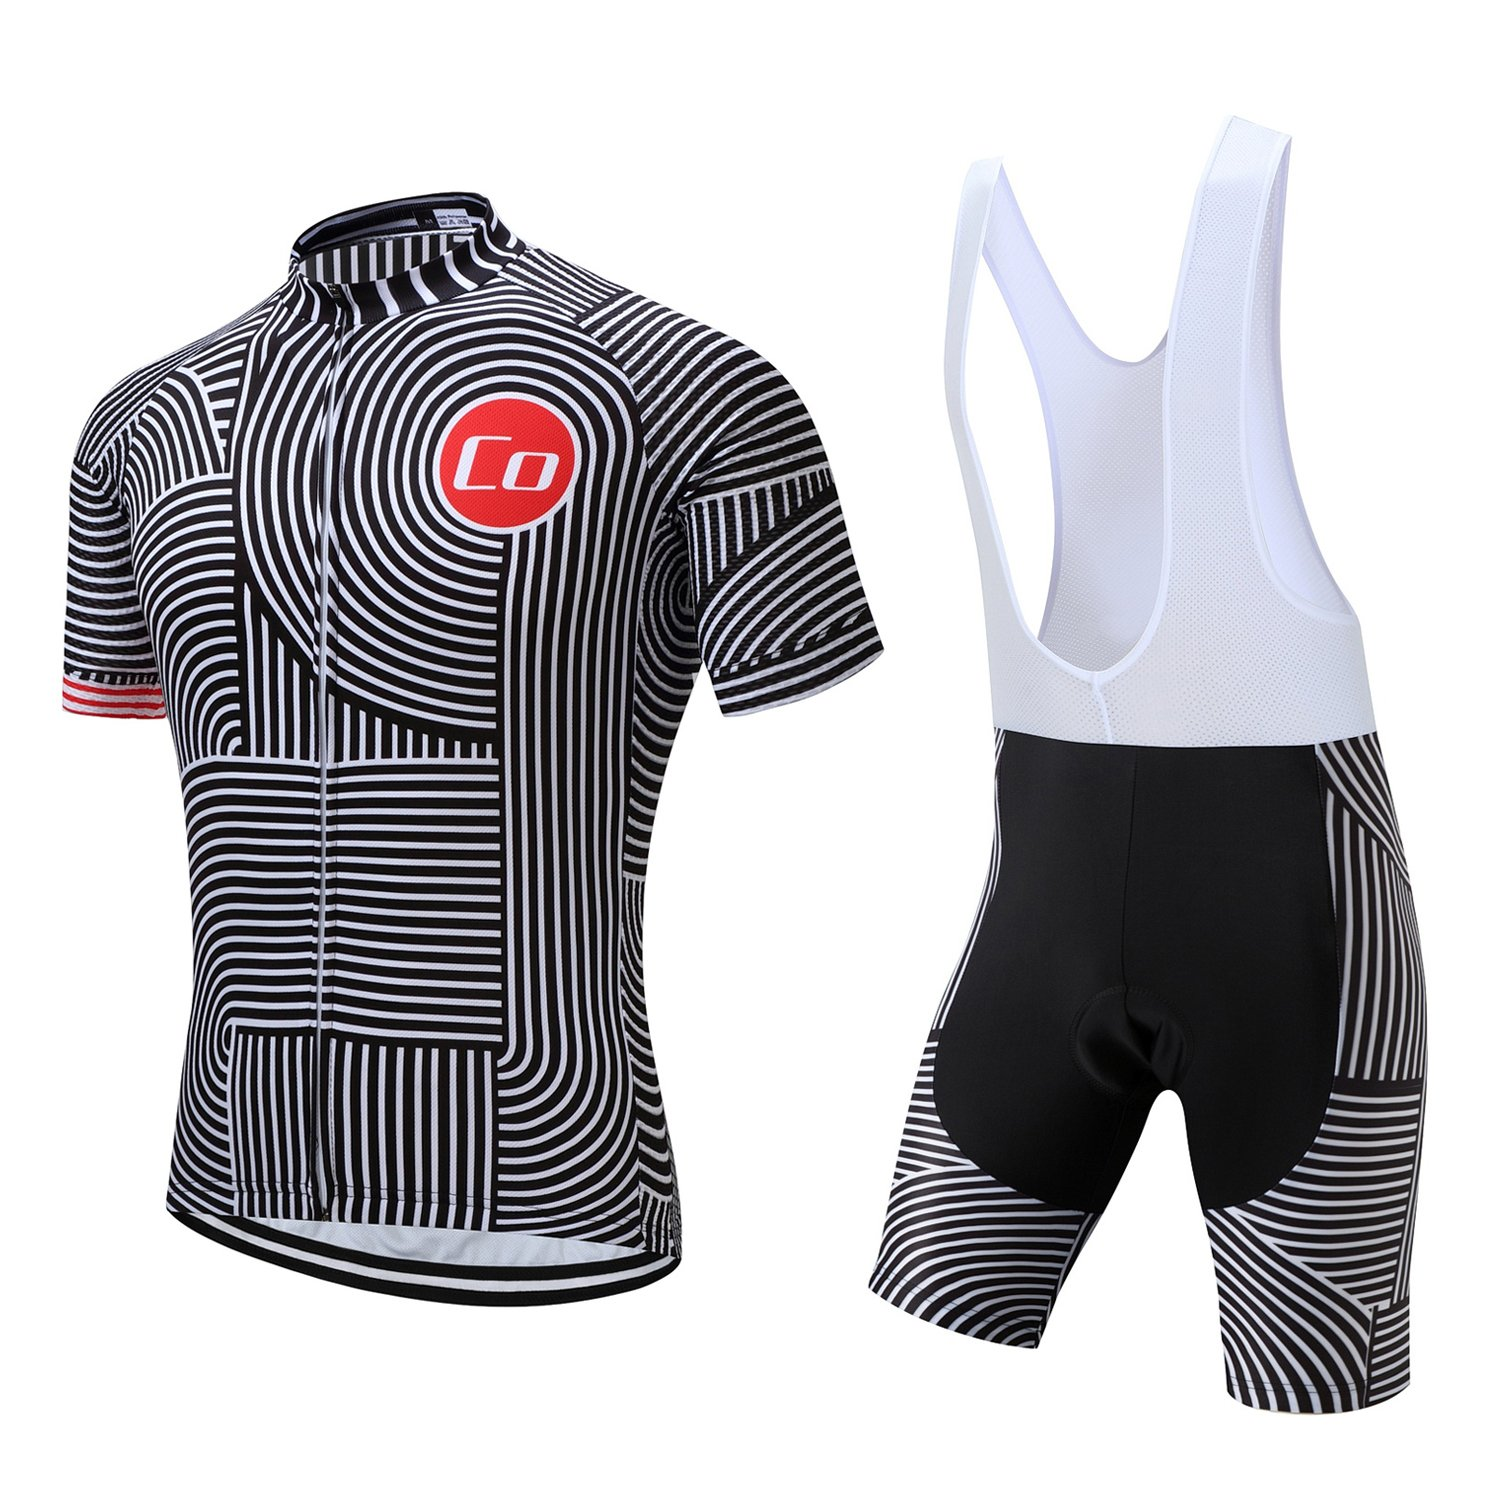 Coconut Ropamo Summer Men's Cycling Jersey Road Bike Jersey Cycling Bib Shorts with 4D Padded Cycling Kits for Men (XL,1018) by Coconut Ropamo